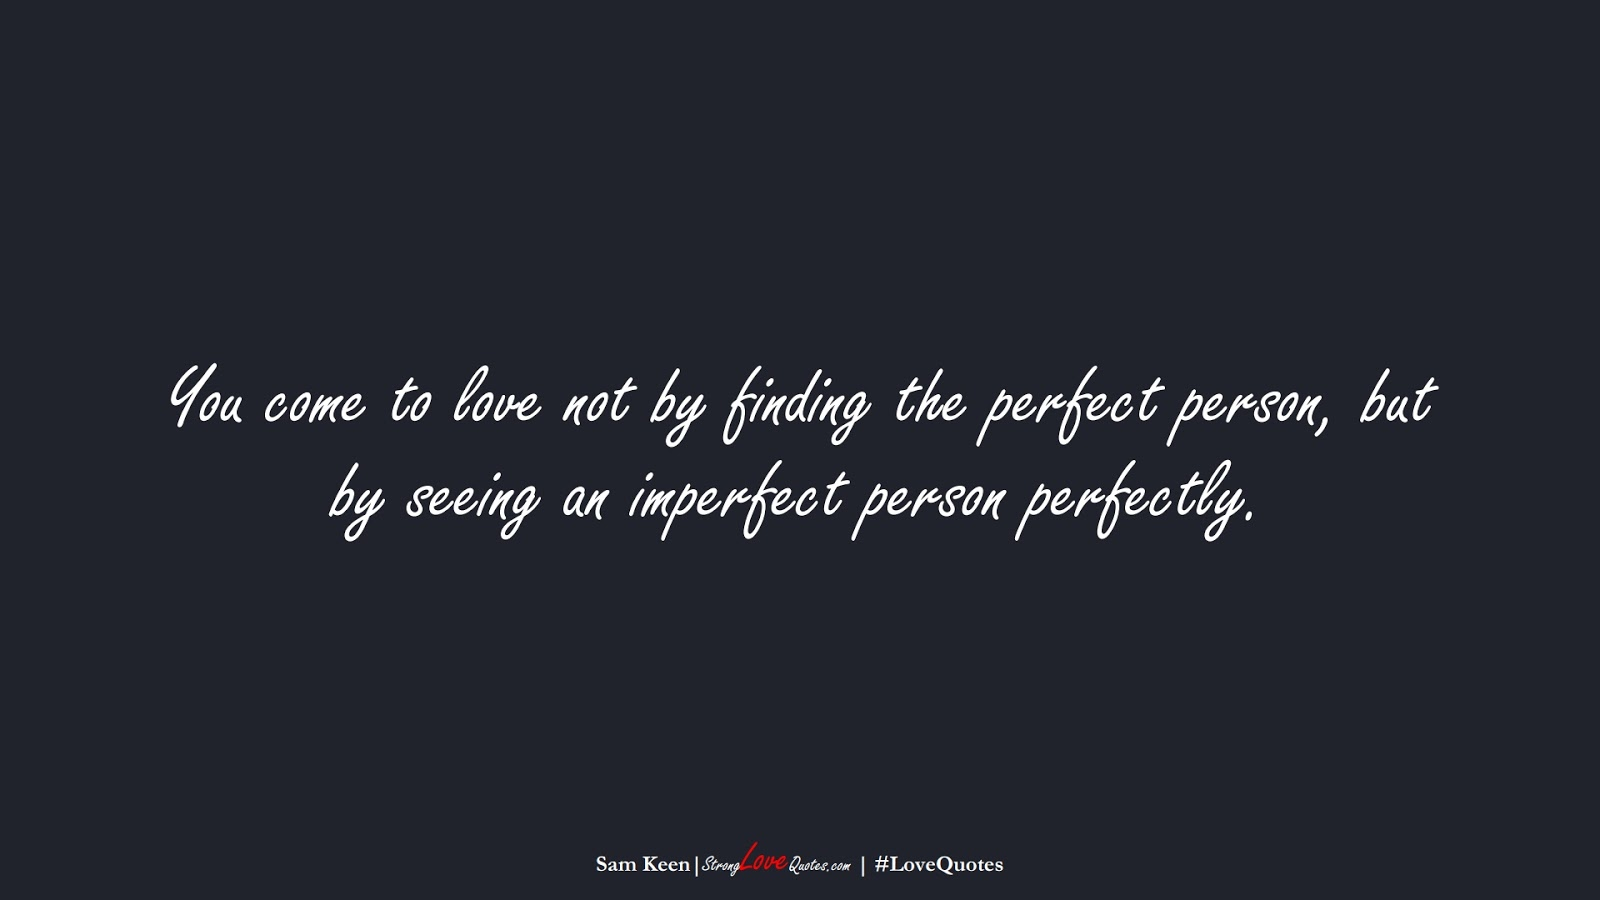 You come to love not by finding the perfect person, but by seeing an imperfect person perfectly. (Sam Keen);  #LoveQuotes